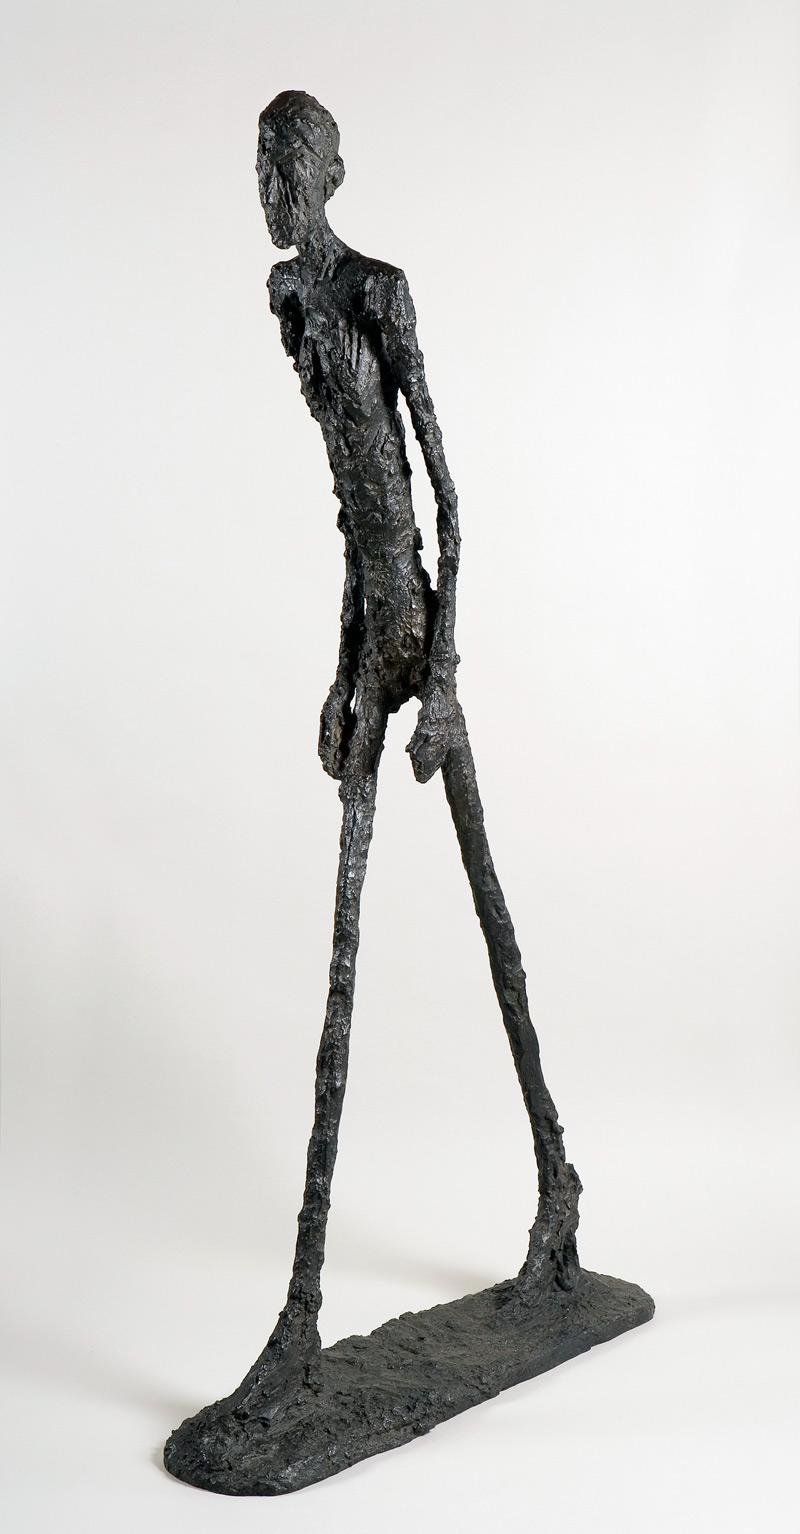 Alberto Giacometti, Walking Man I., 1961